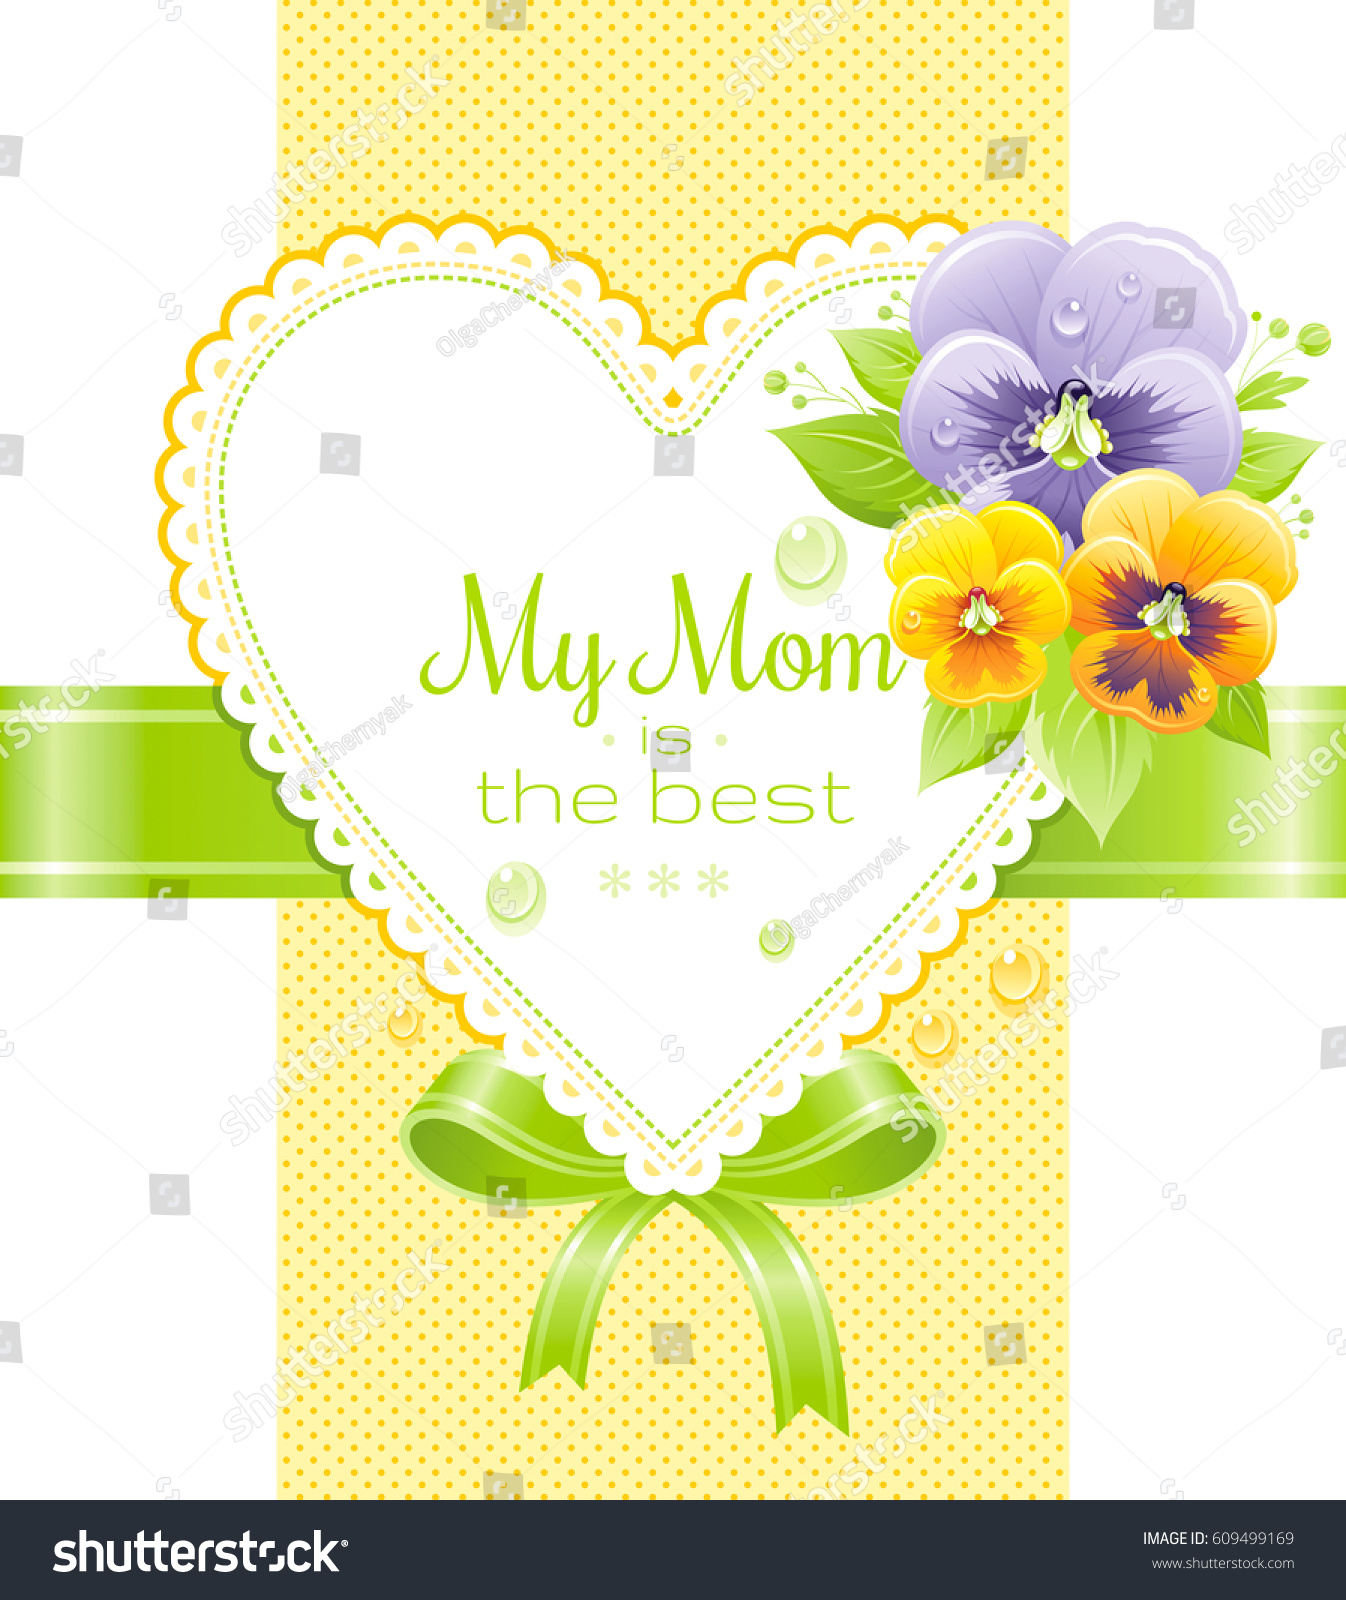 My mom best greeting card mothers stock vector 609499169 my mom is the best greeting card for mothers day holiday elegant design violet kristyandbryce Image collections